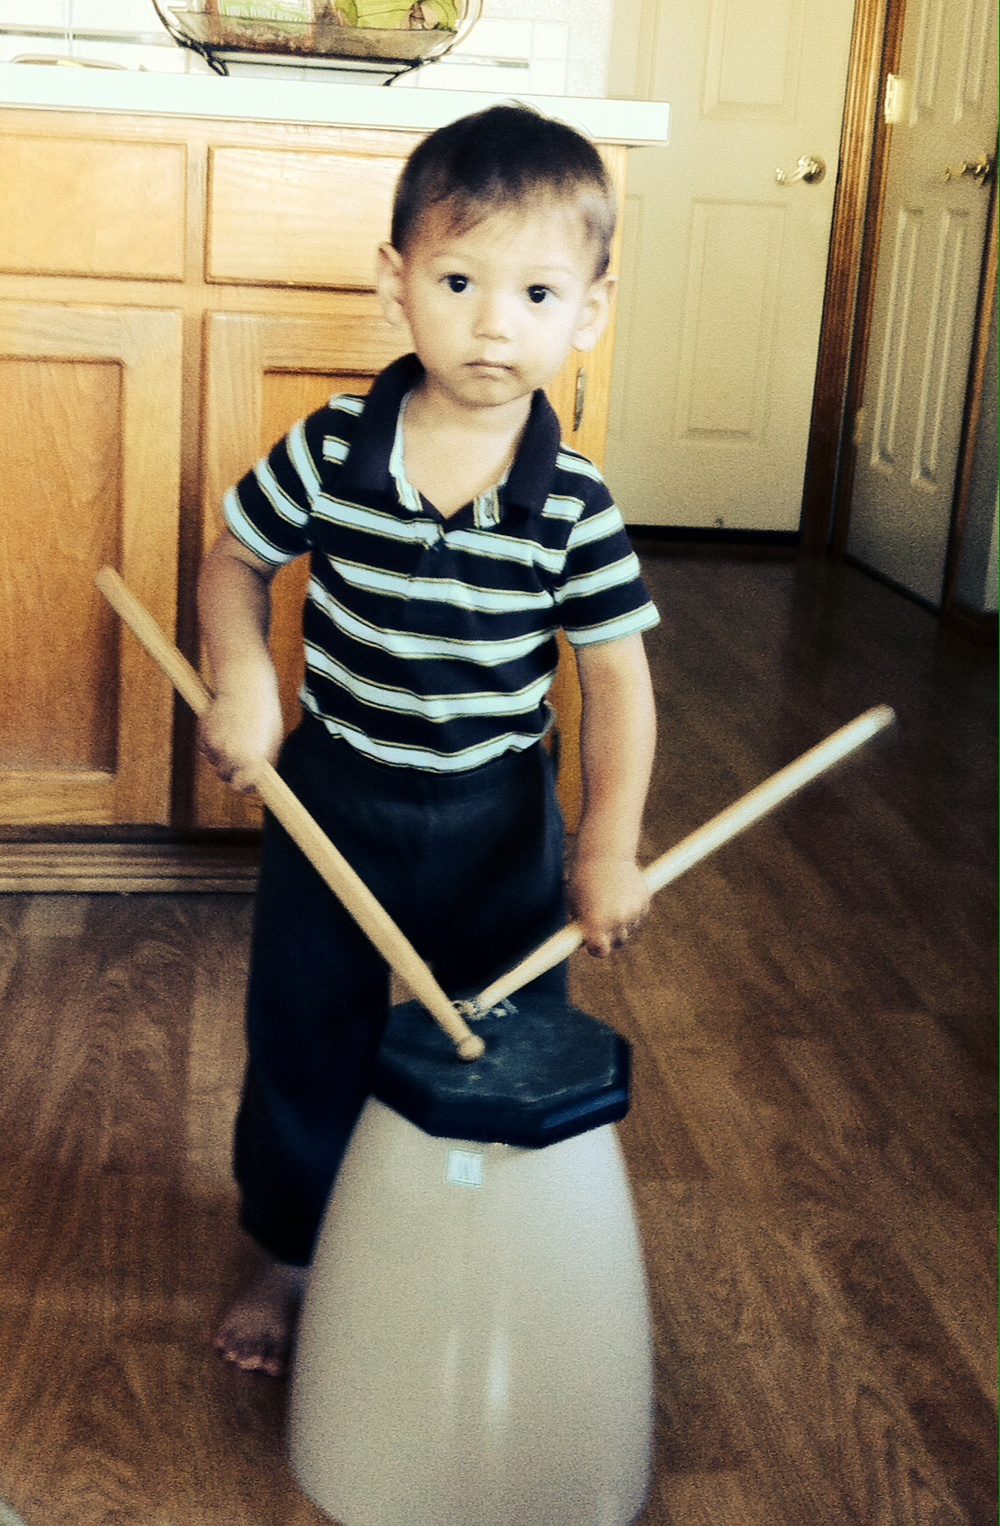 My son drumming on a drum pad and overturned trash can in the kitchen